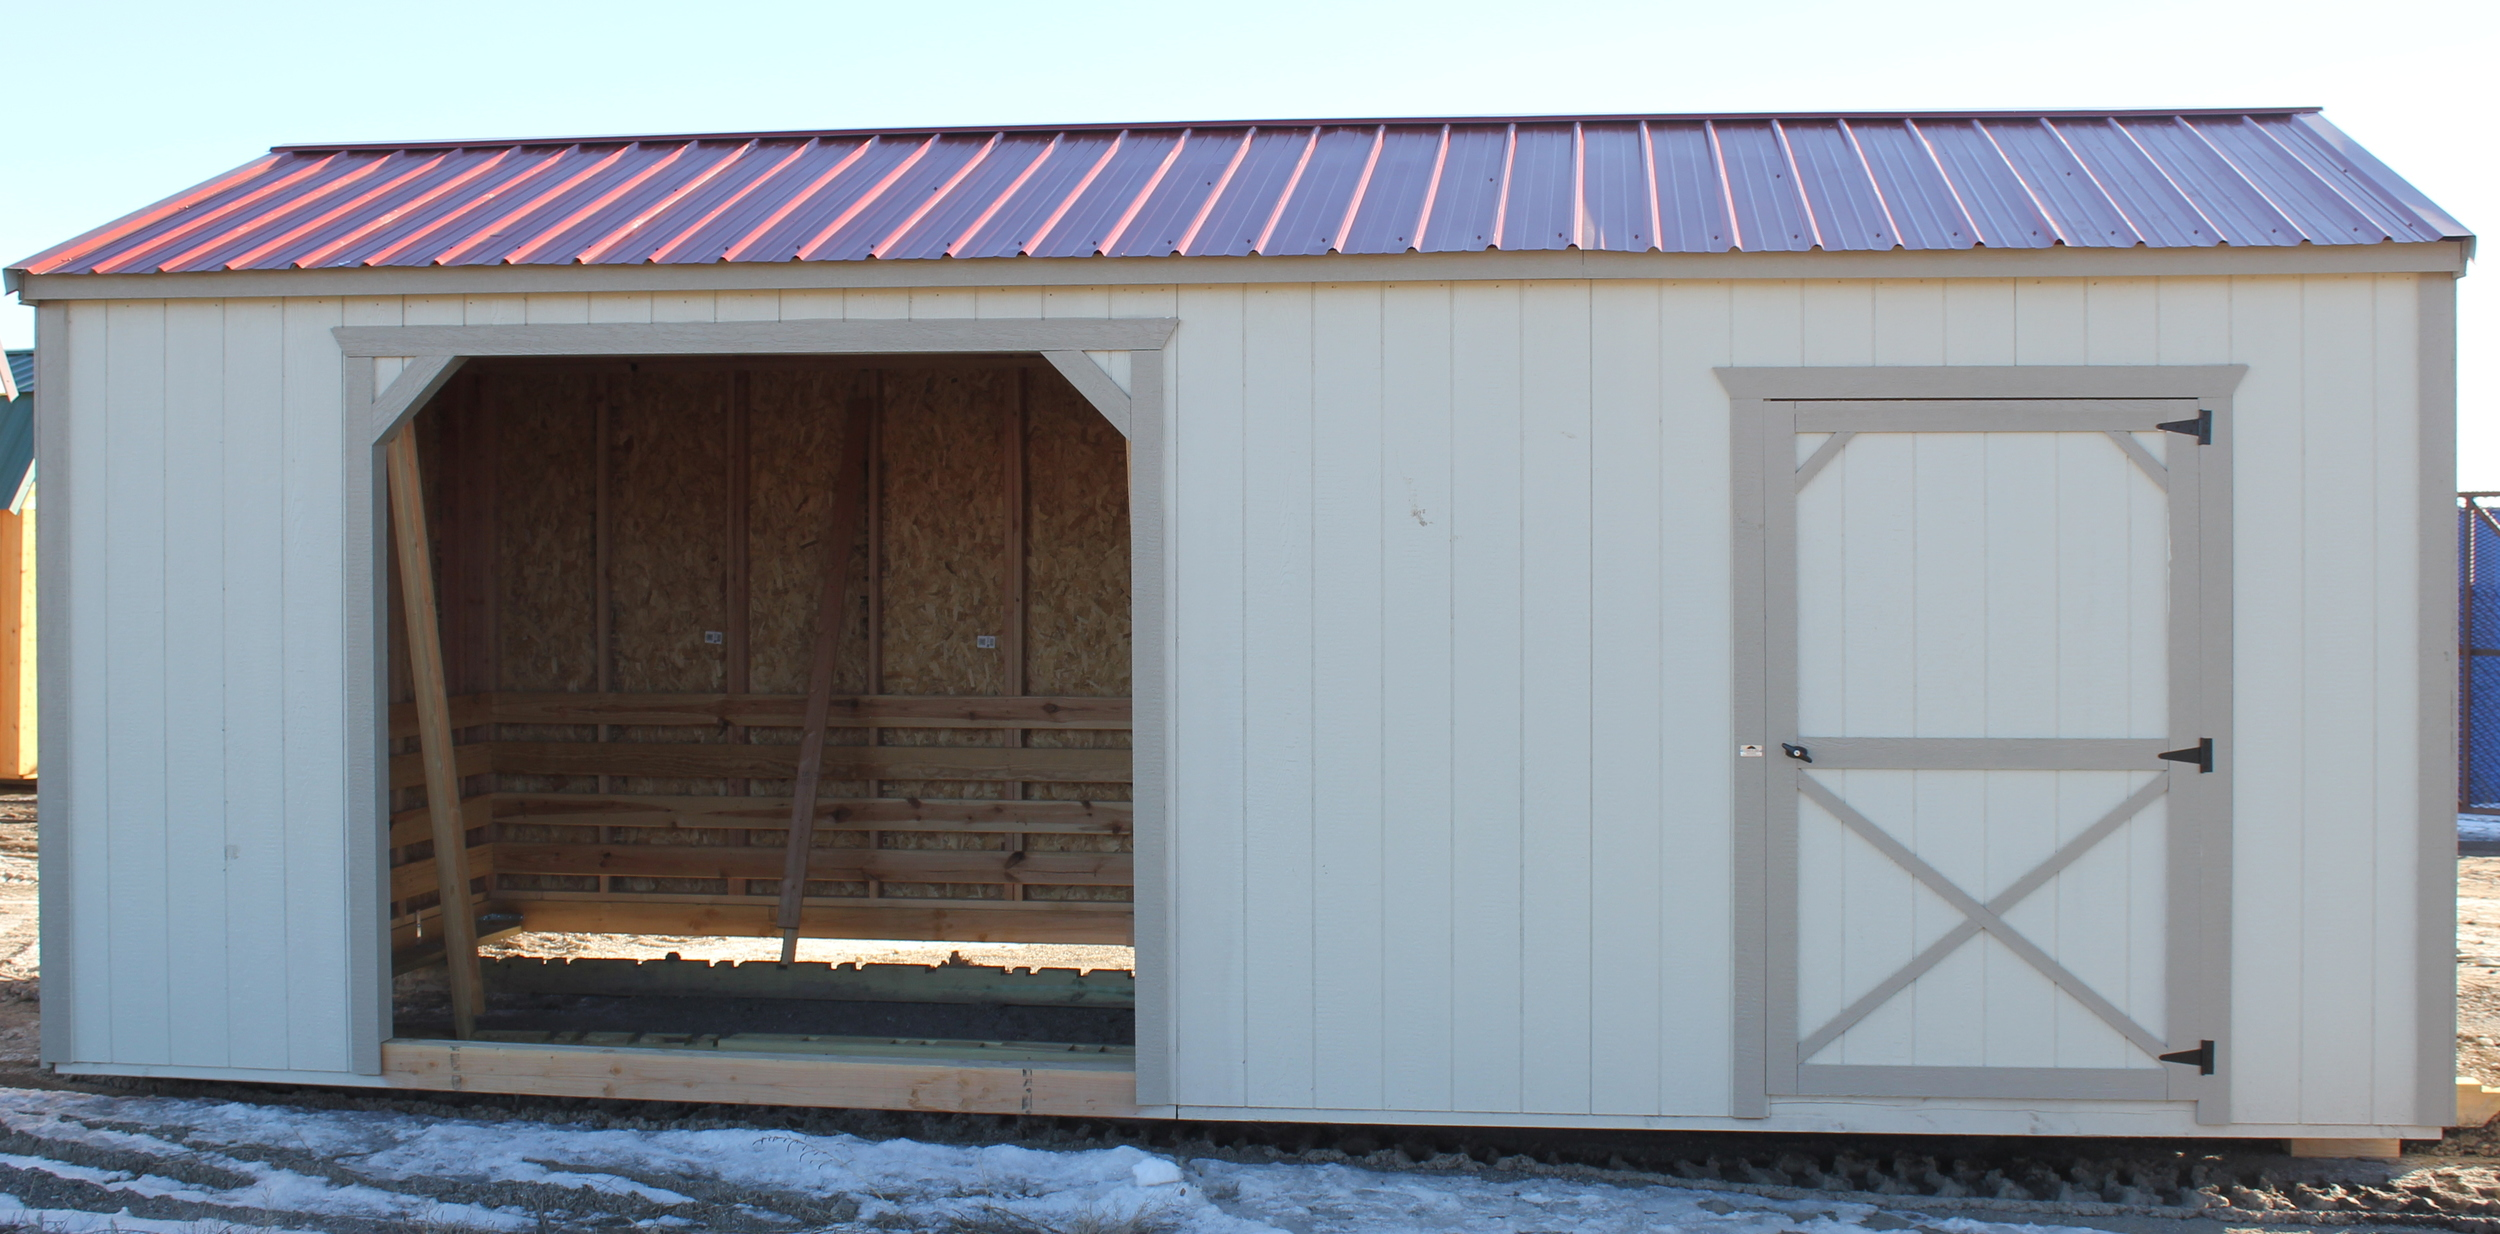 Our horse barns come with shingles, or you can upgrade to metal roofing for free! Metal roof colors include red, green brown, white. Shingle colors are black, green, brown, and weather wood.